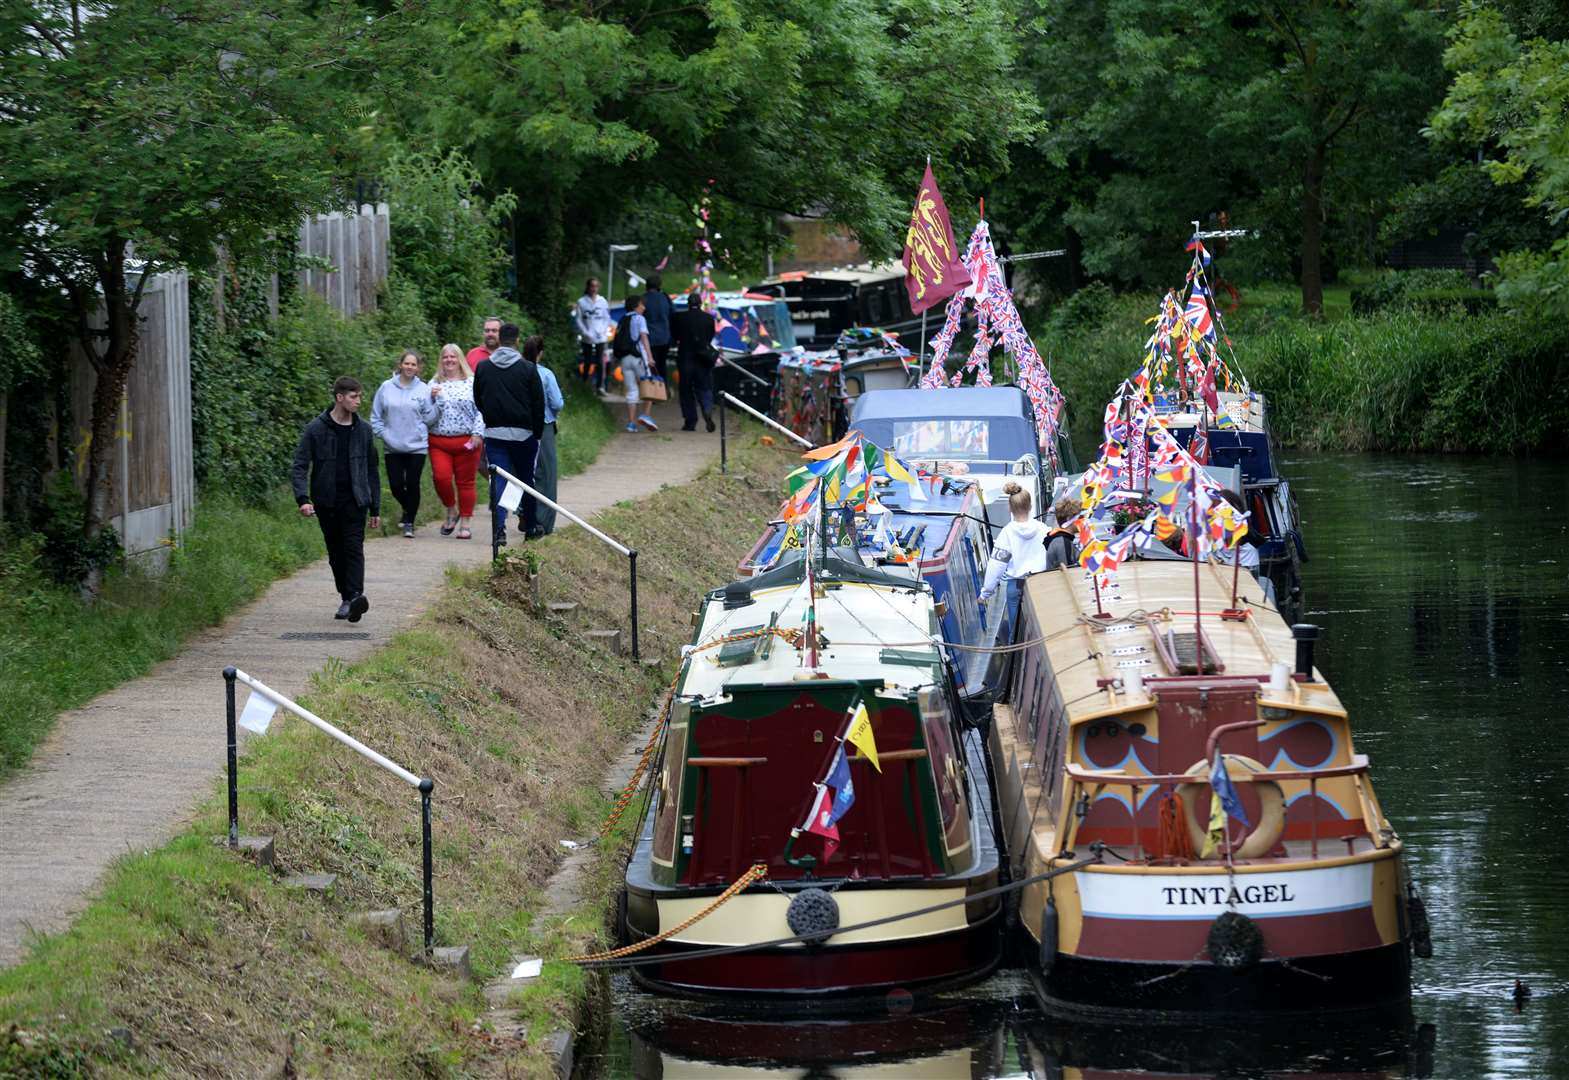 Bishop's Stortford to mark 250th anniversary of the Stort Navigation